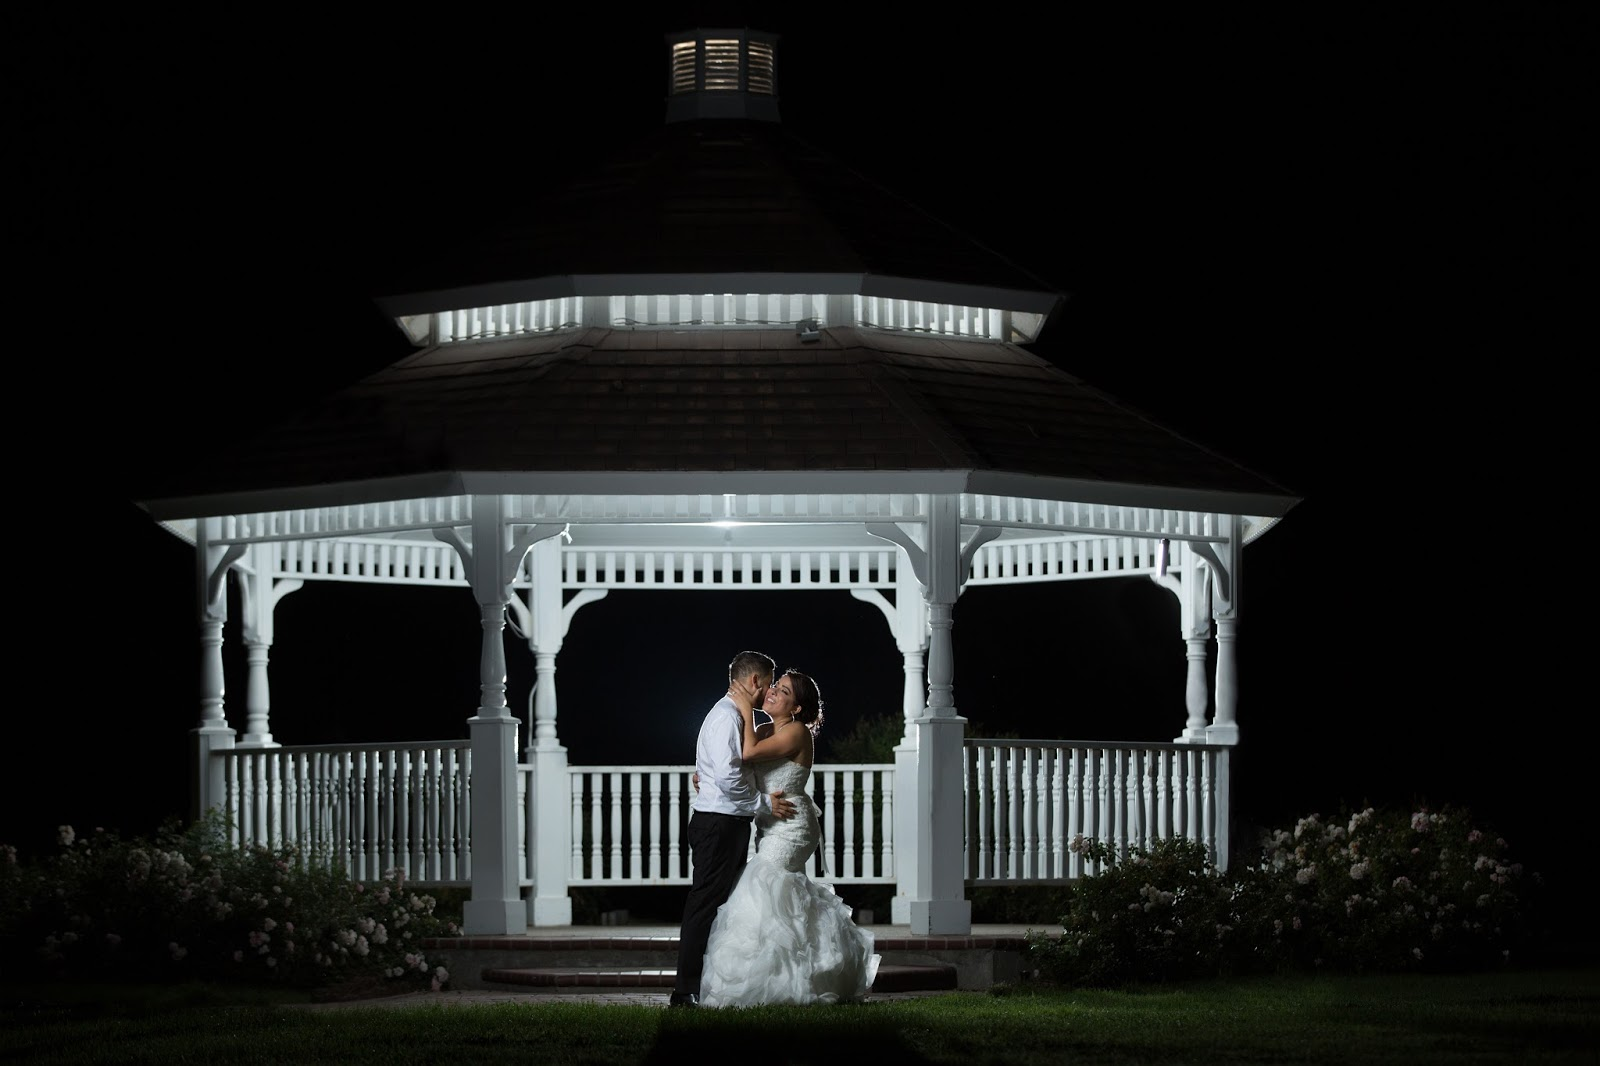 Bride and Groom embrace lovingly under the Gazebo